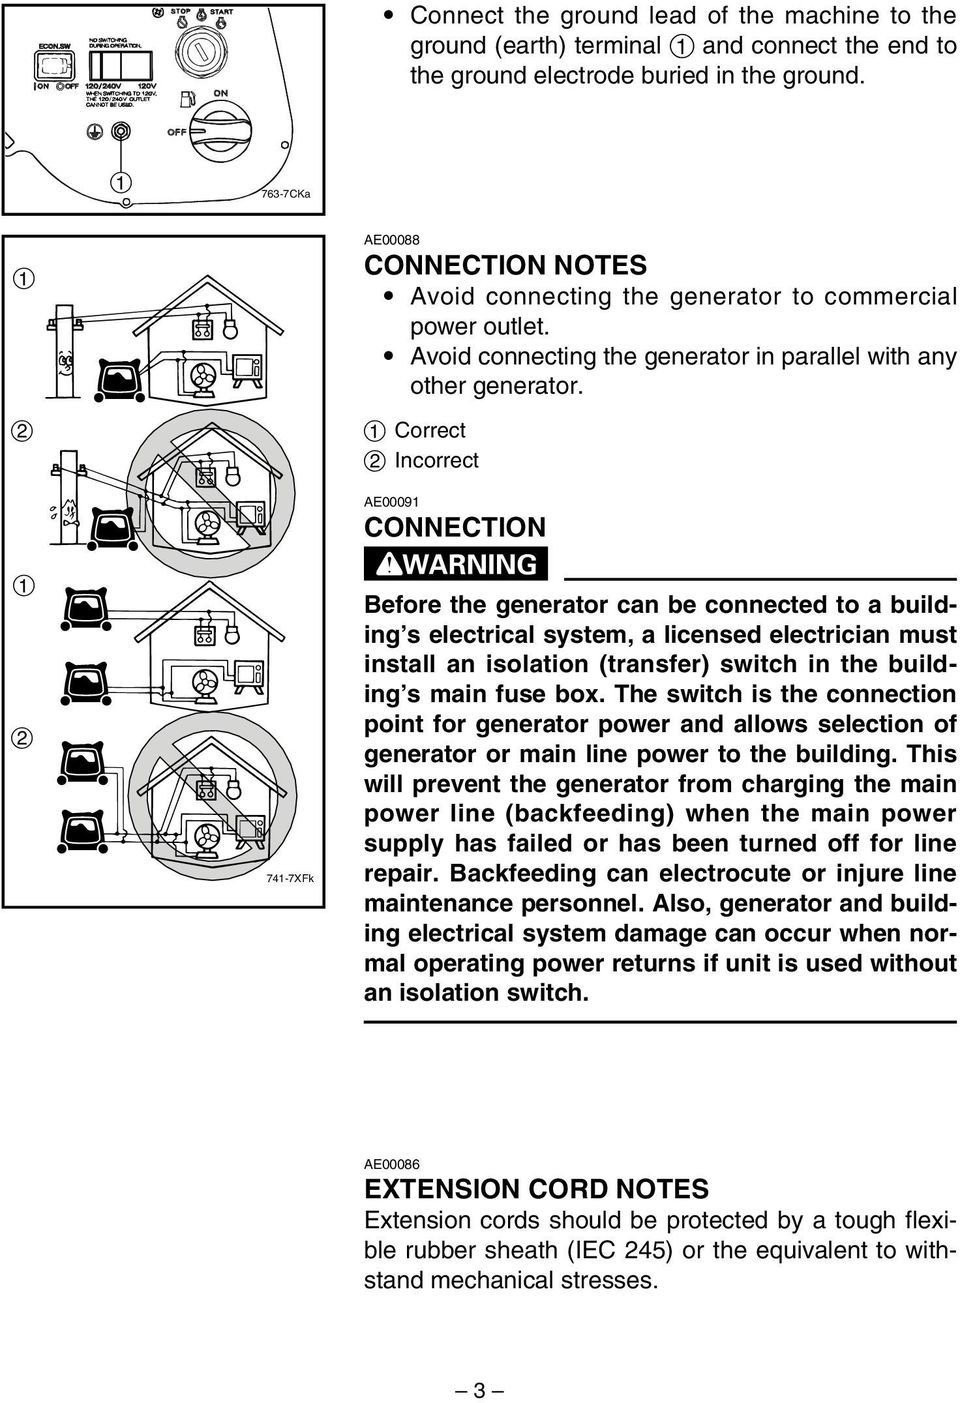 Generator Owner S Manual Ef6300isde Please Read And Understand This Fuse Box Correct 2 Incorrect Ae0009 Connection W Before The Can Be Connected To A Building